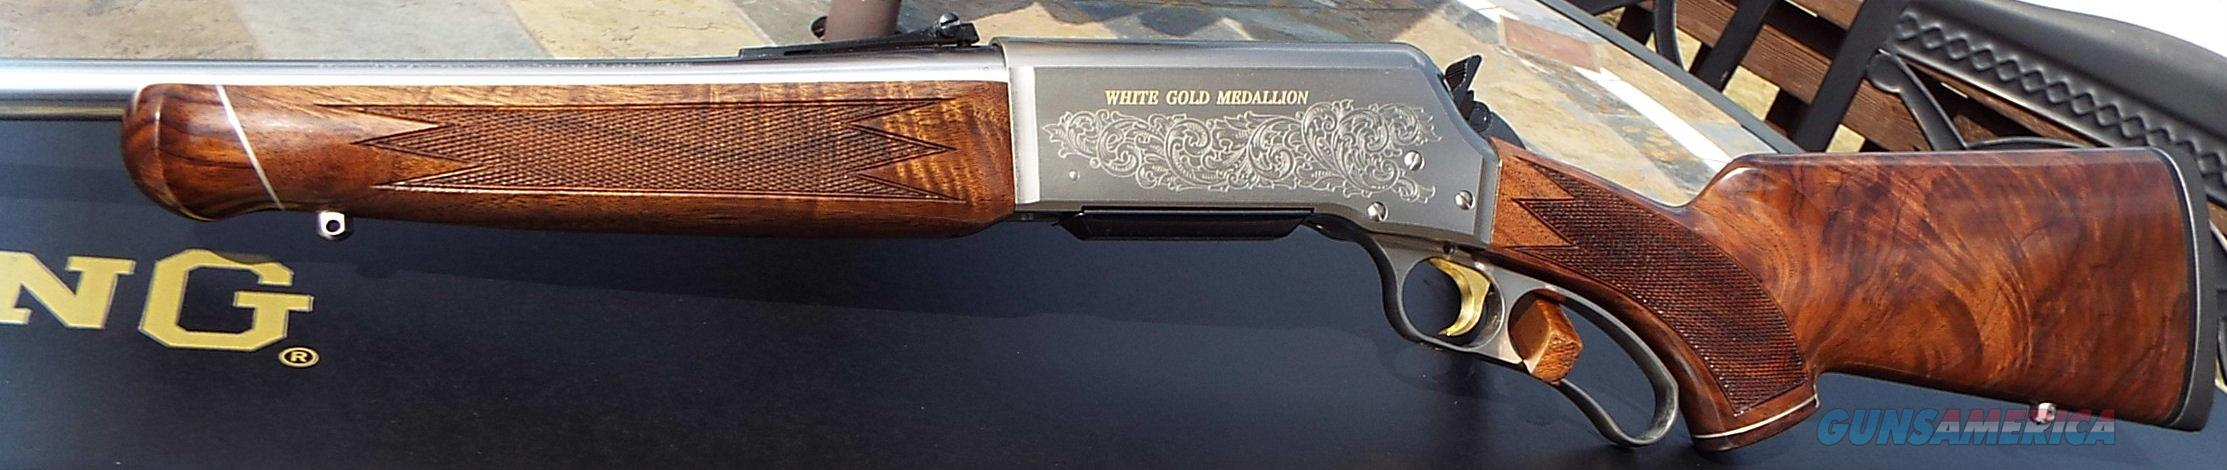 Browning BLR White Gold Medallion    308 Win.    New!   LAYAWAY OPTION    034017118  Guns > Rifles > Browning Rifles > Lever Action